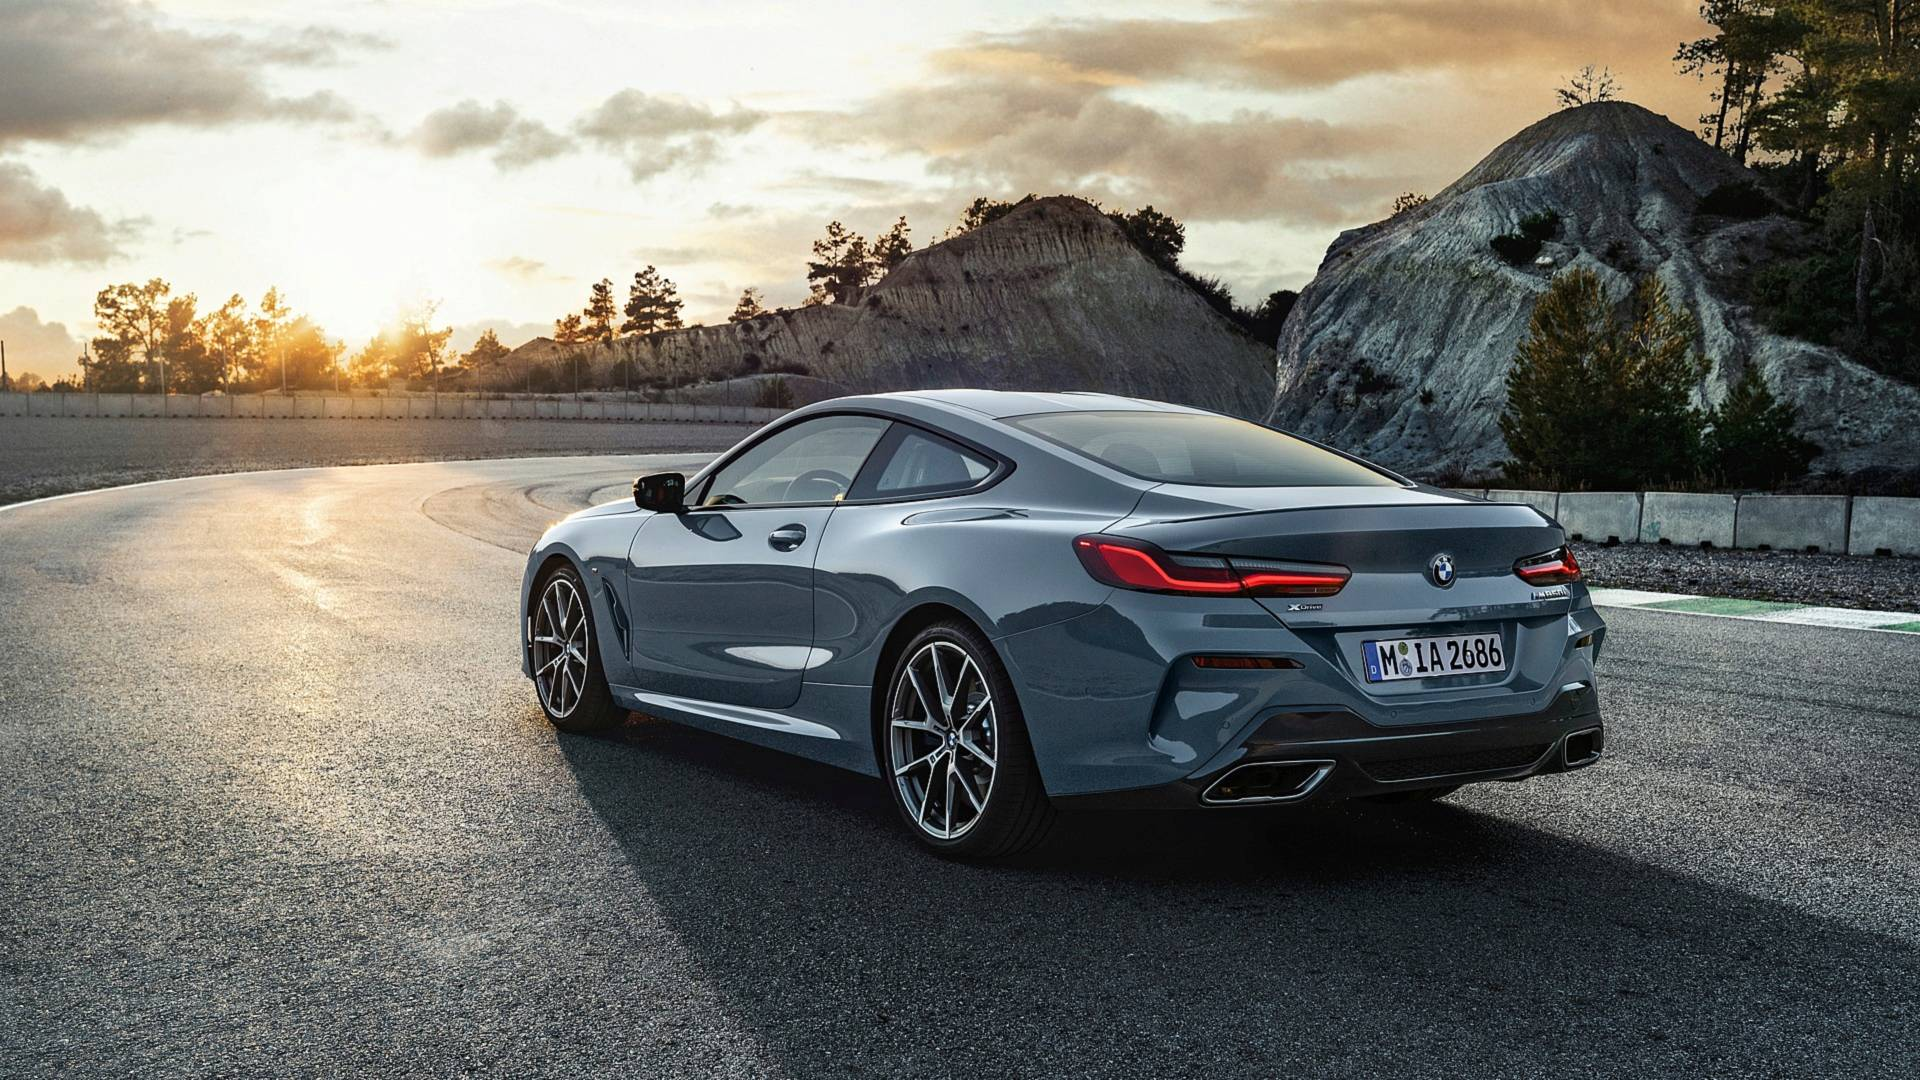 2019 BMW 8 Series Going On Sale In the U.S. From $111,900